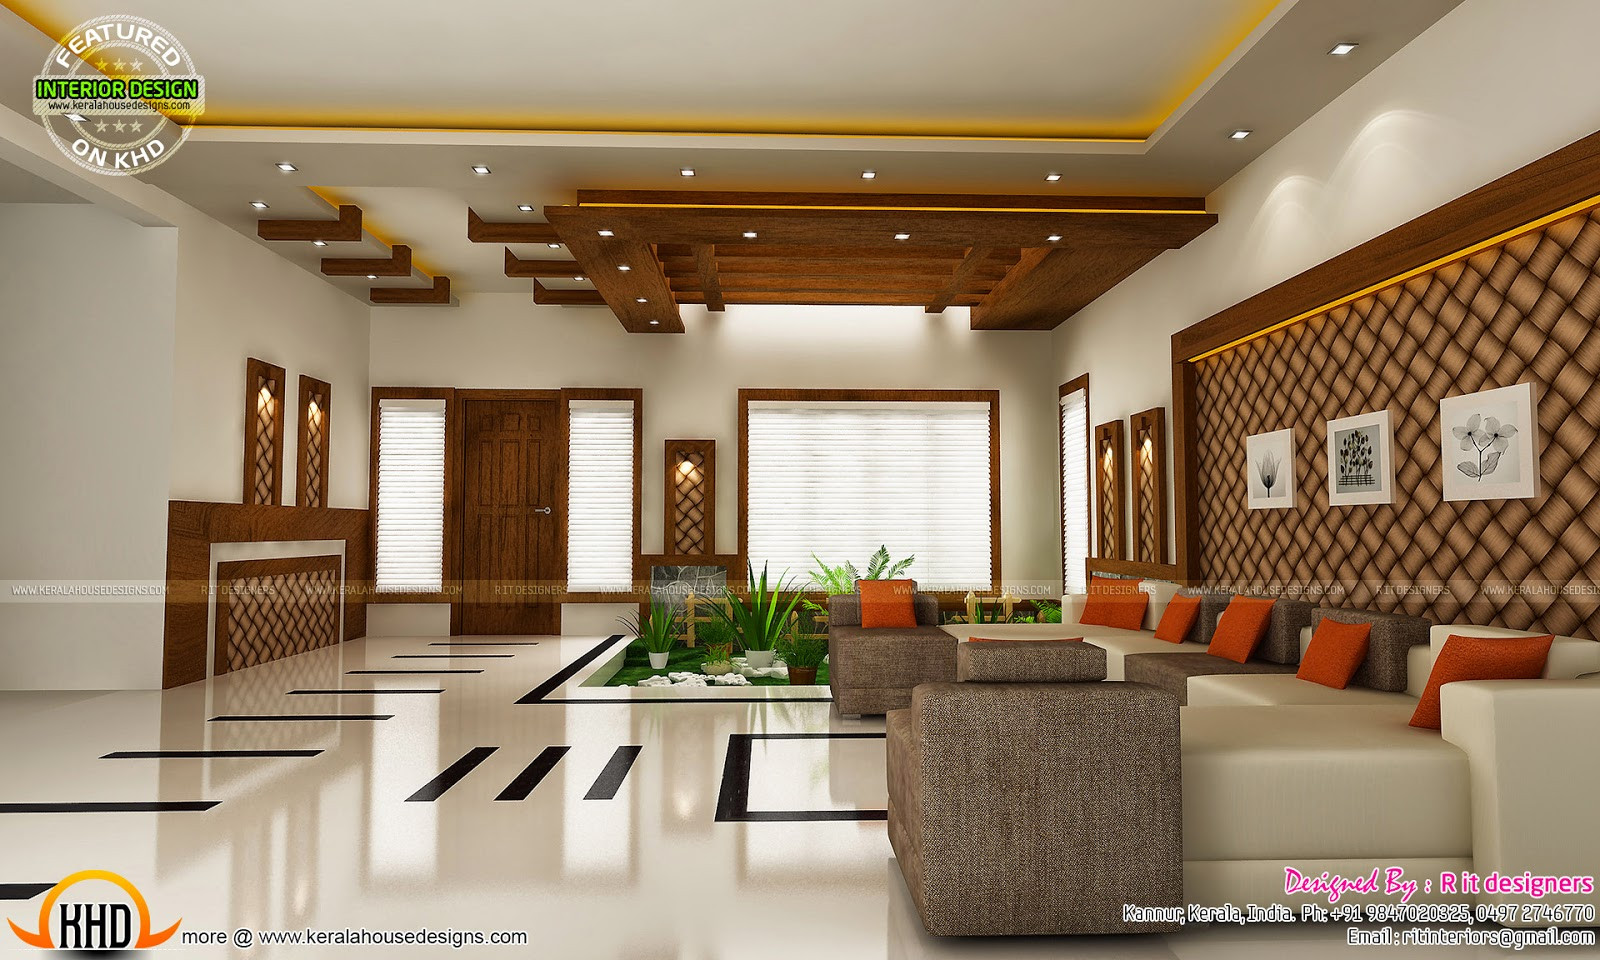 unique dining kitchen interior kerala home design and floor plans